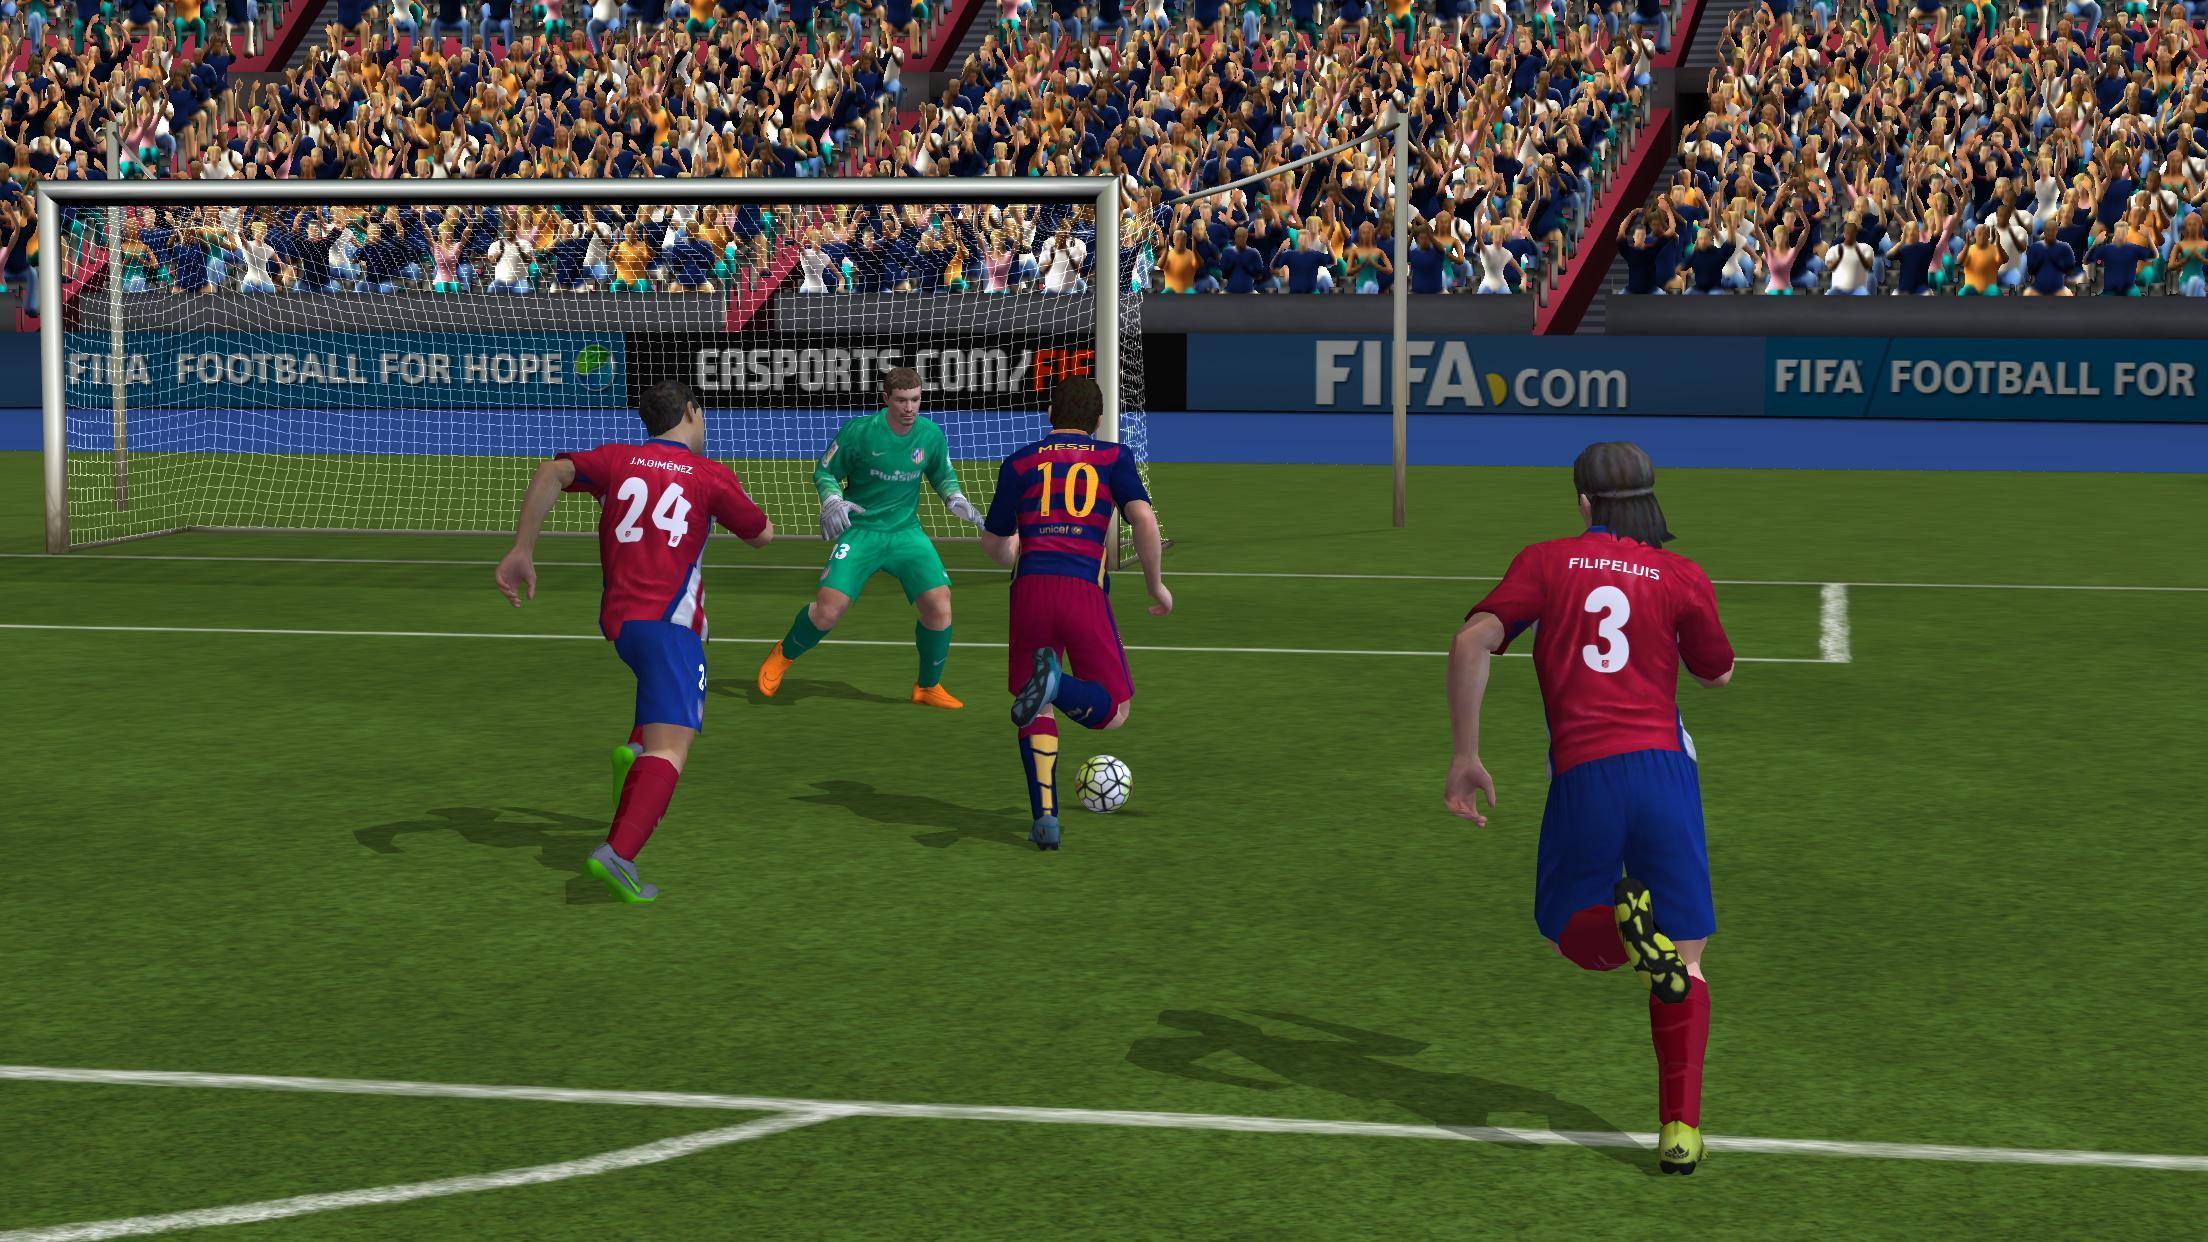 FIFA 15 Soccer Ultimate Team Latest APK Download - Free